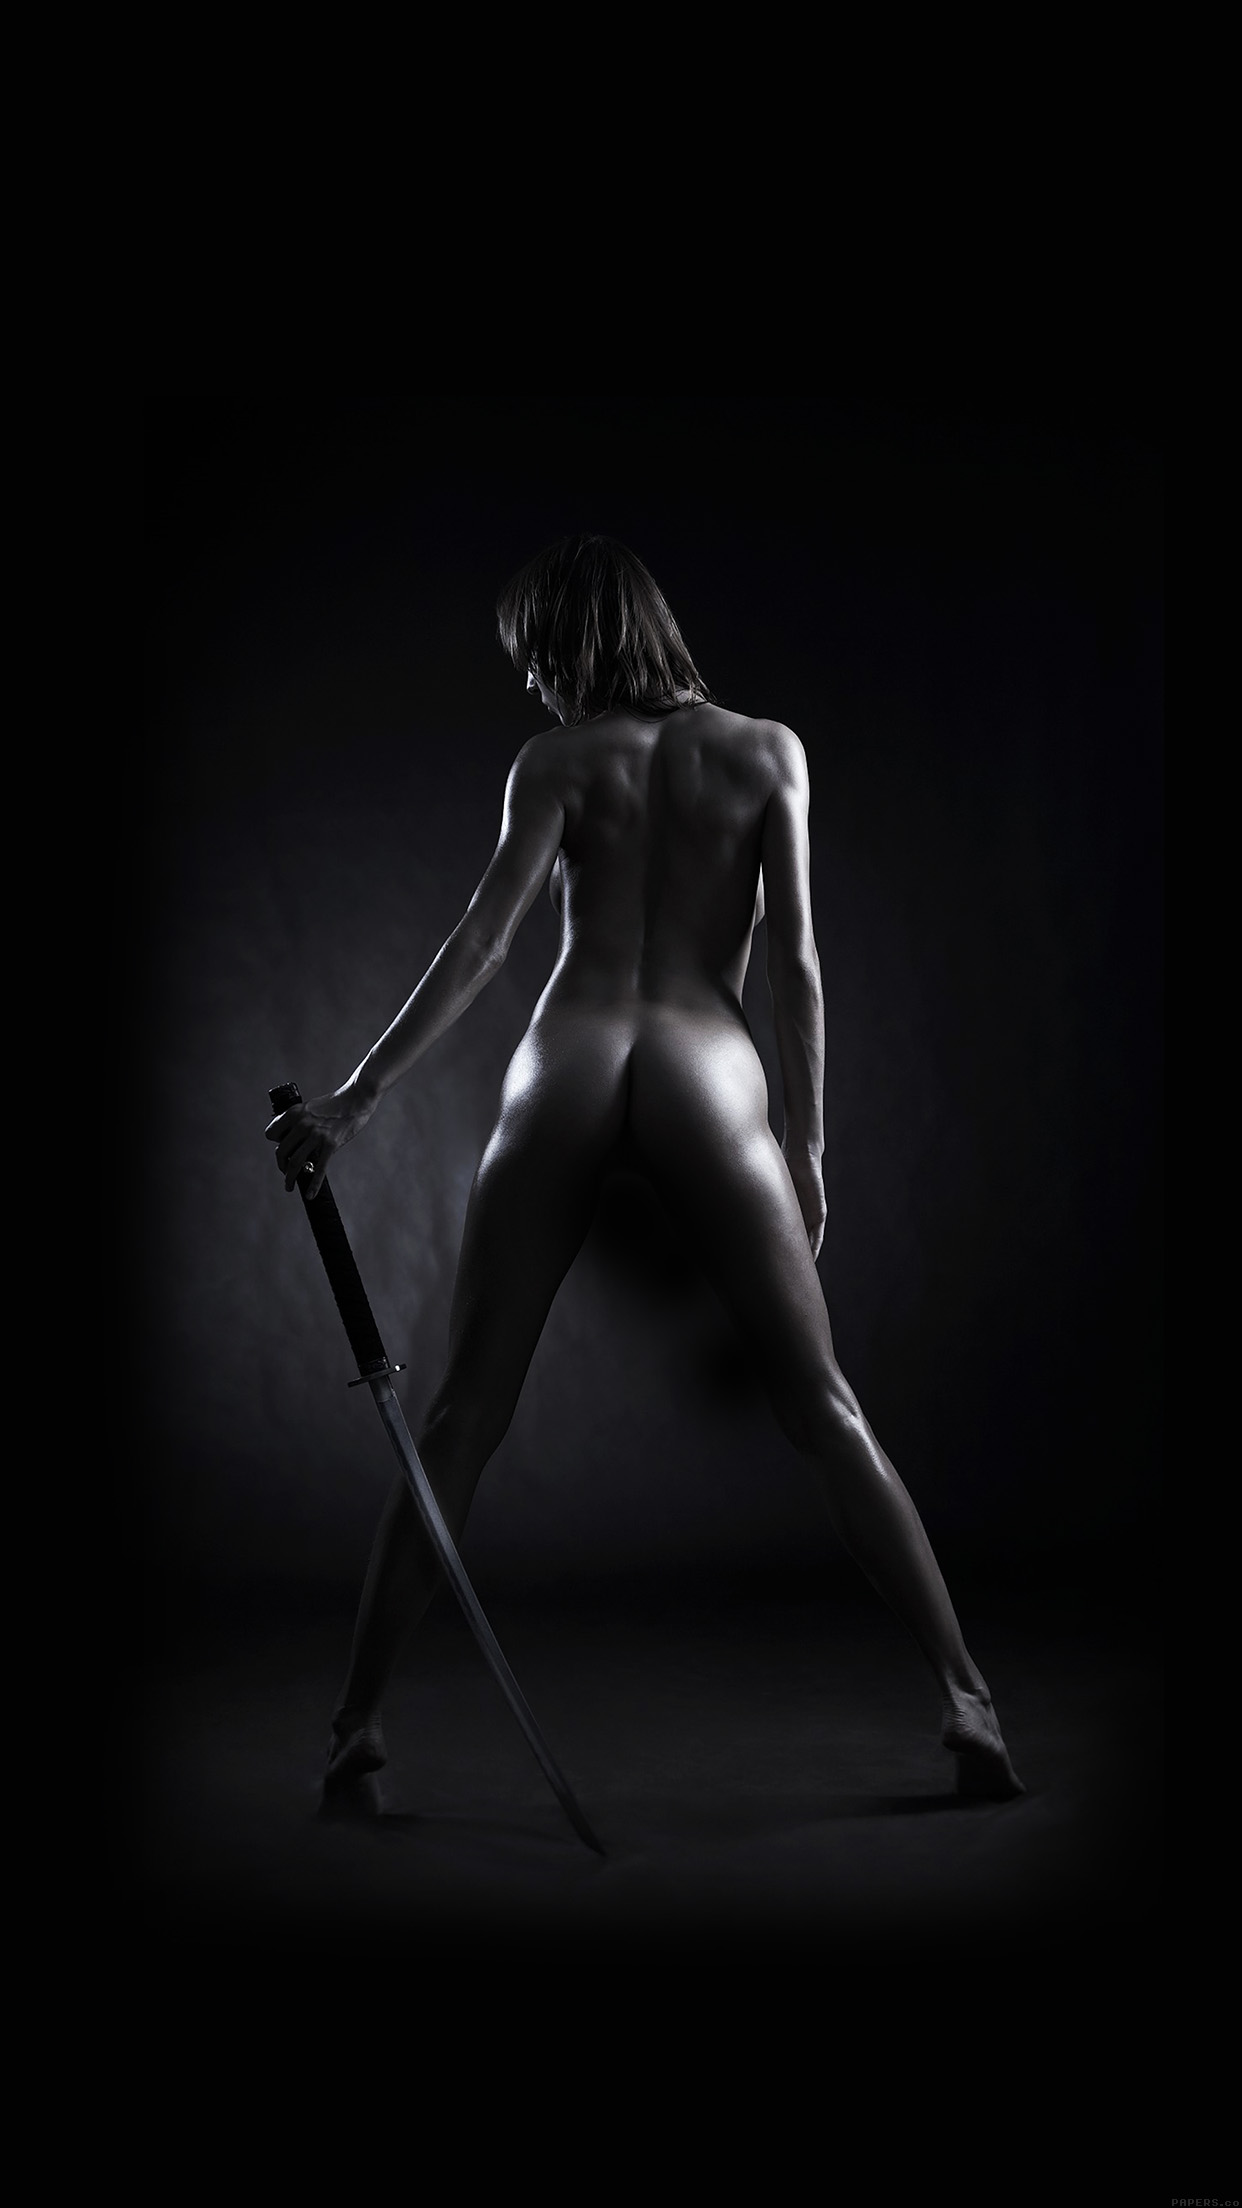 black naked women screensaver pictures